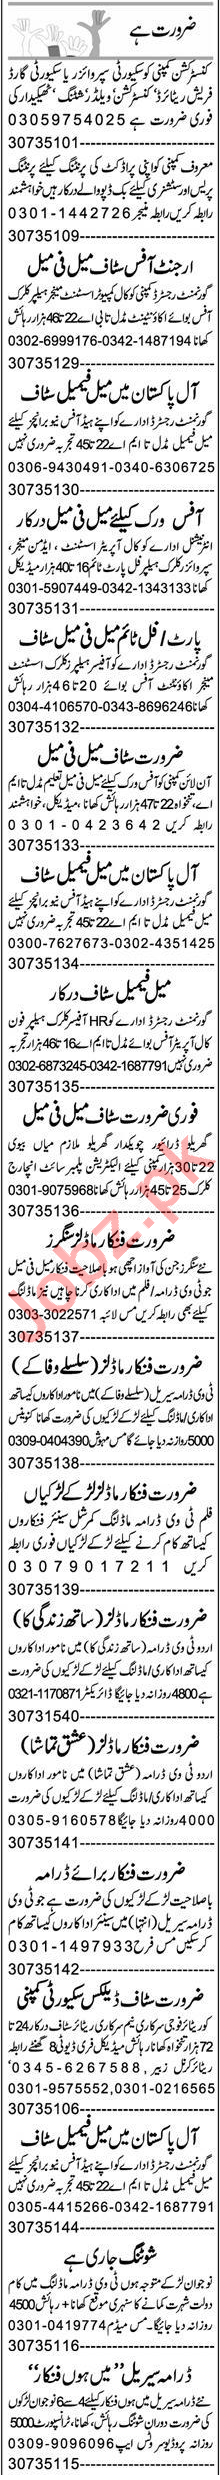 Recovery Officer & Electrician Jobs 2020 in Lahore